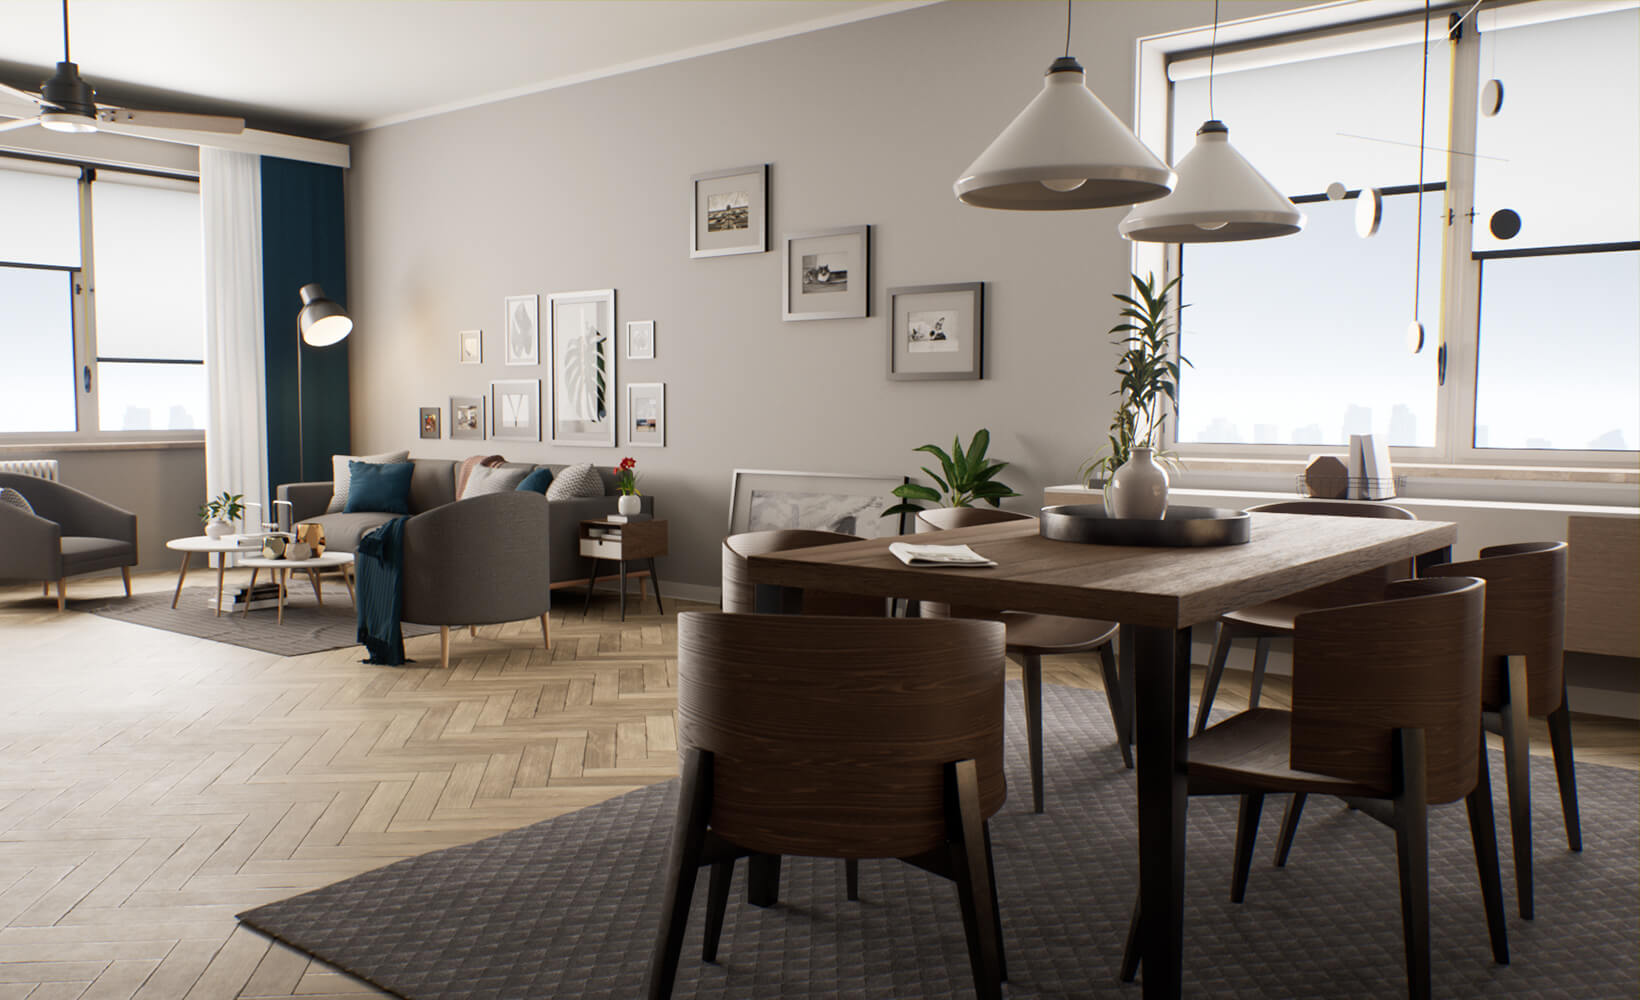 New Archviz Interior Rendering Sample Project Now Available Unreal Engine